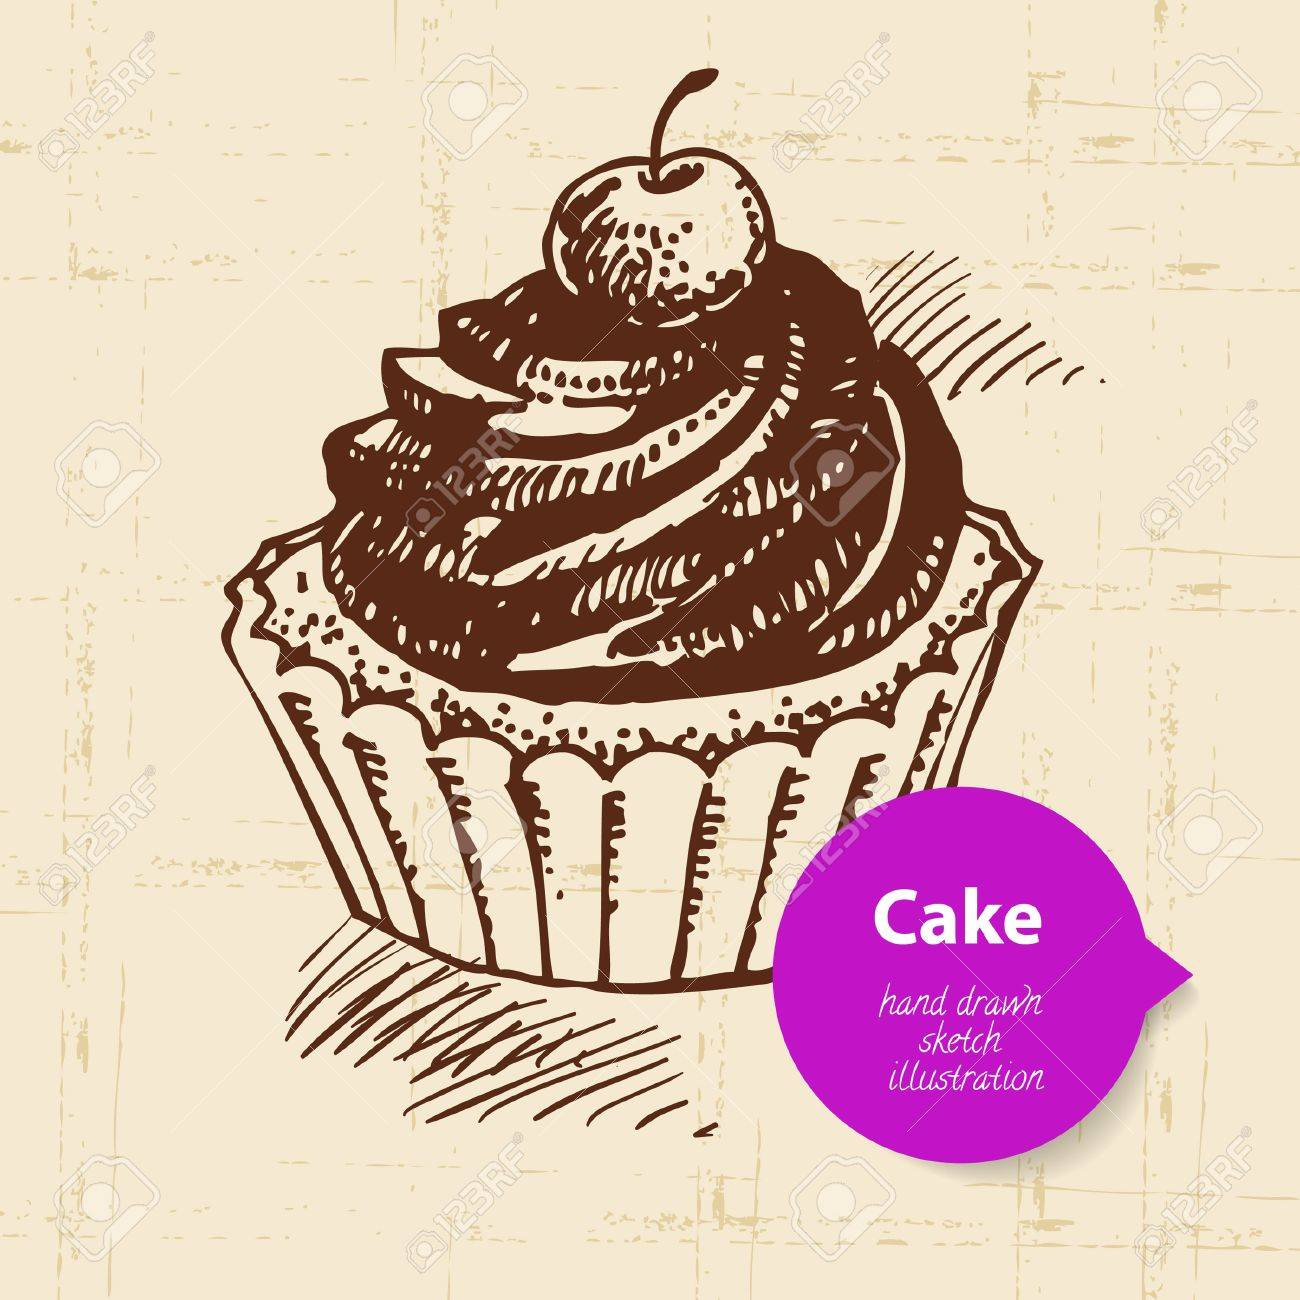 vintage sweet cake background with color bubble hand drawn